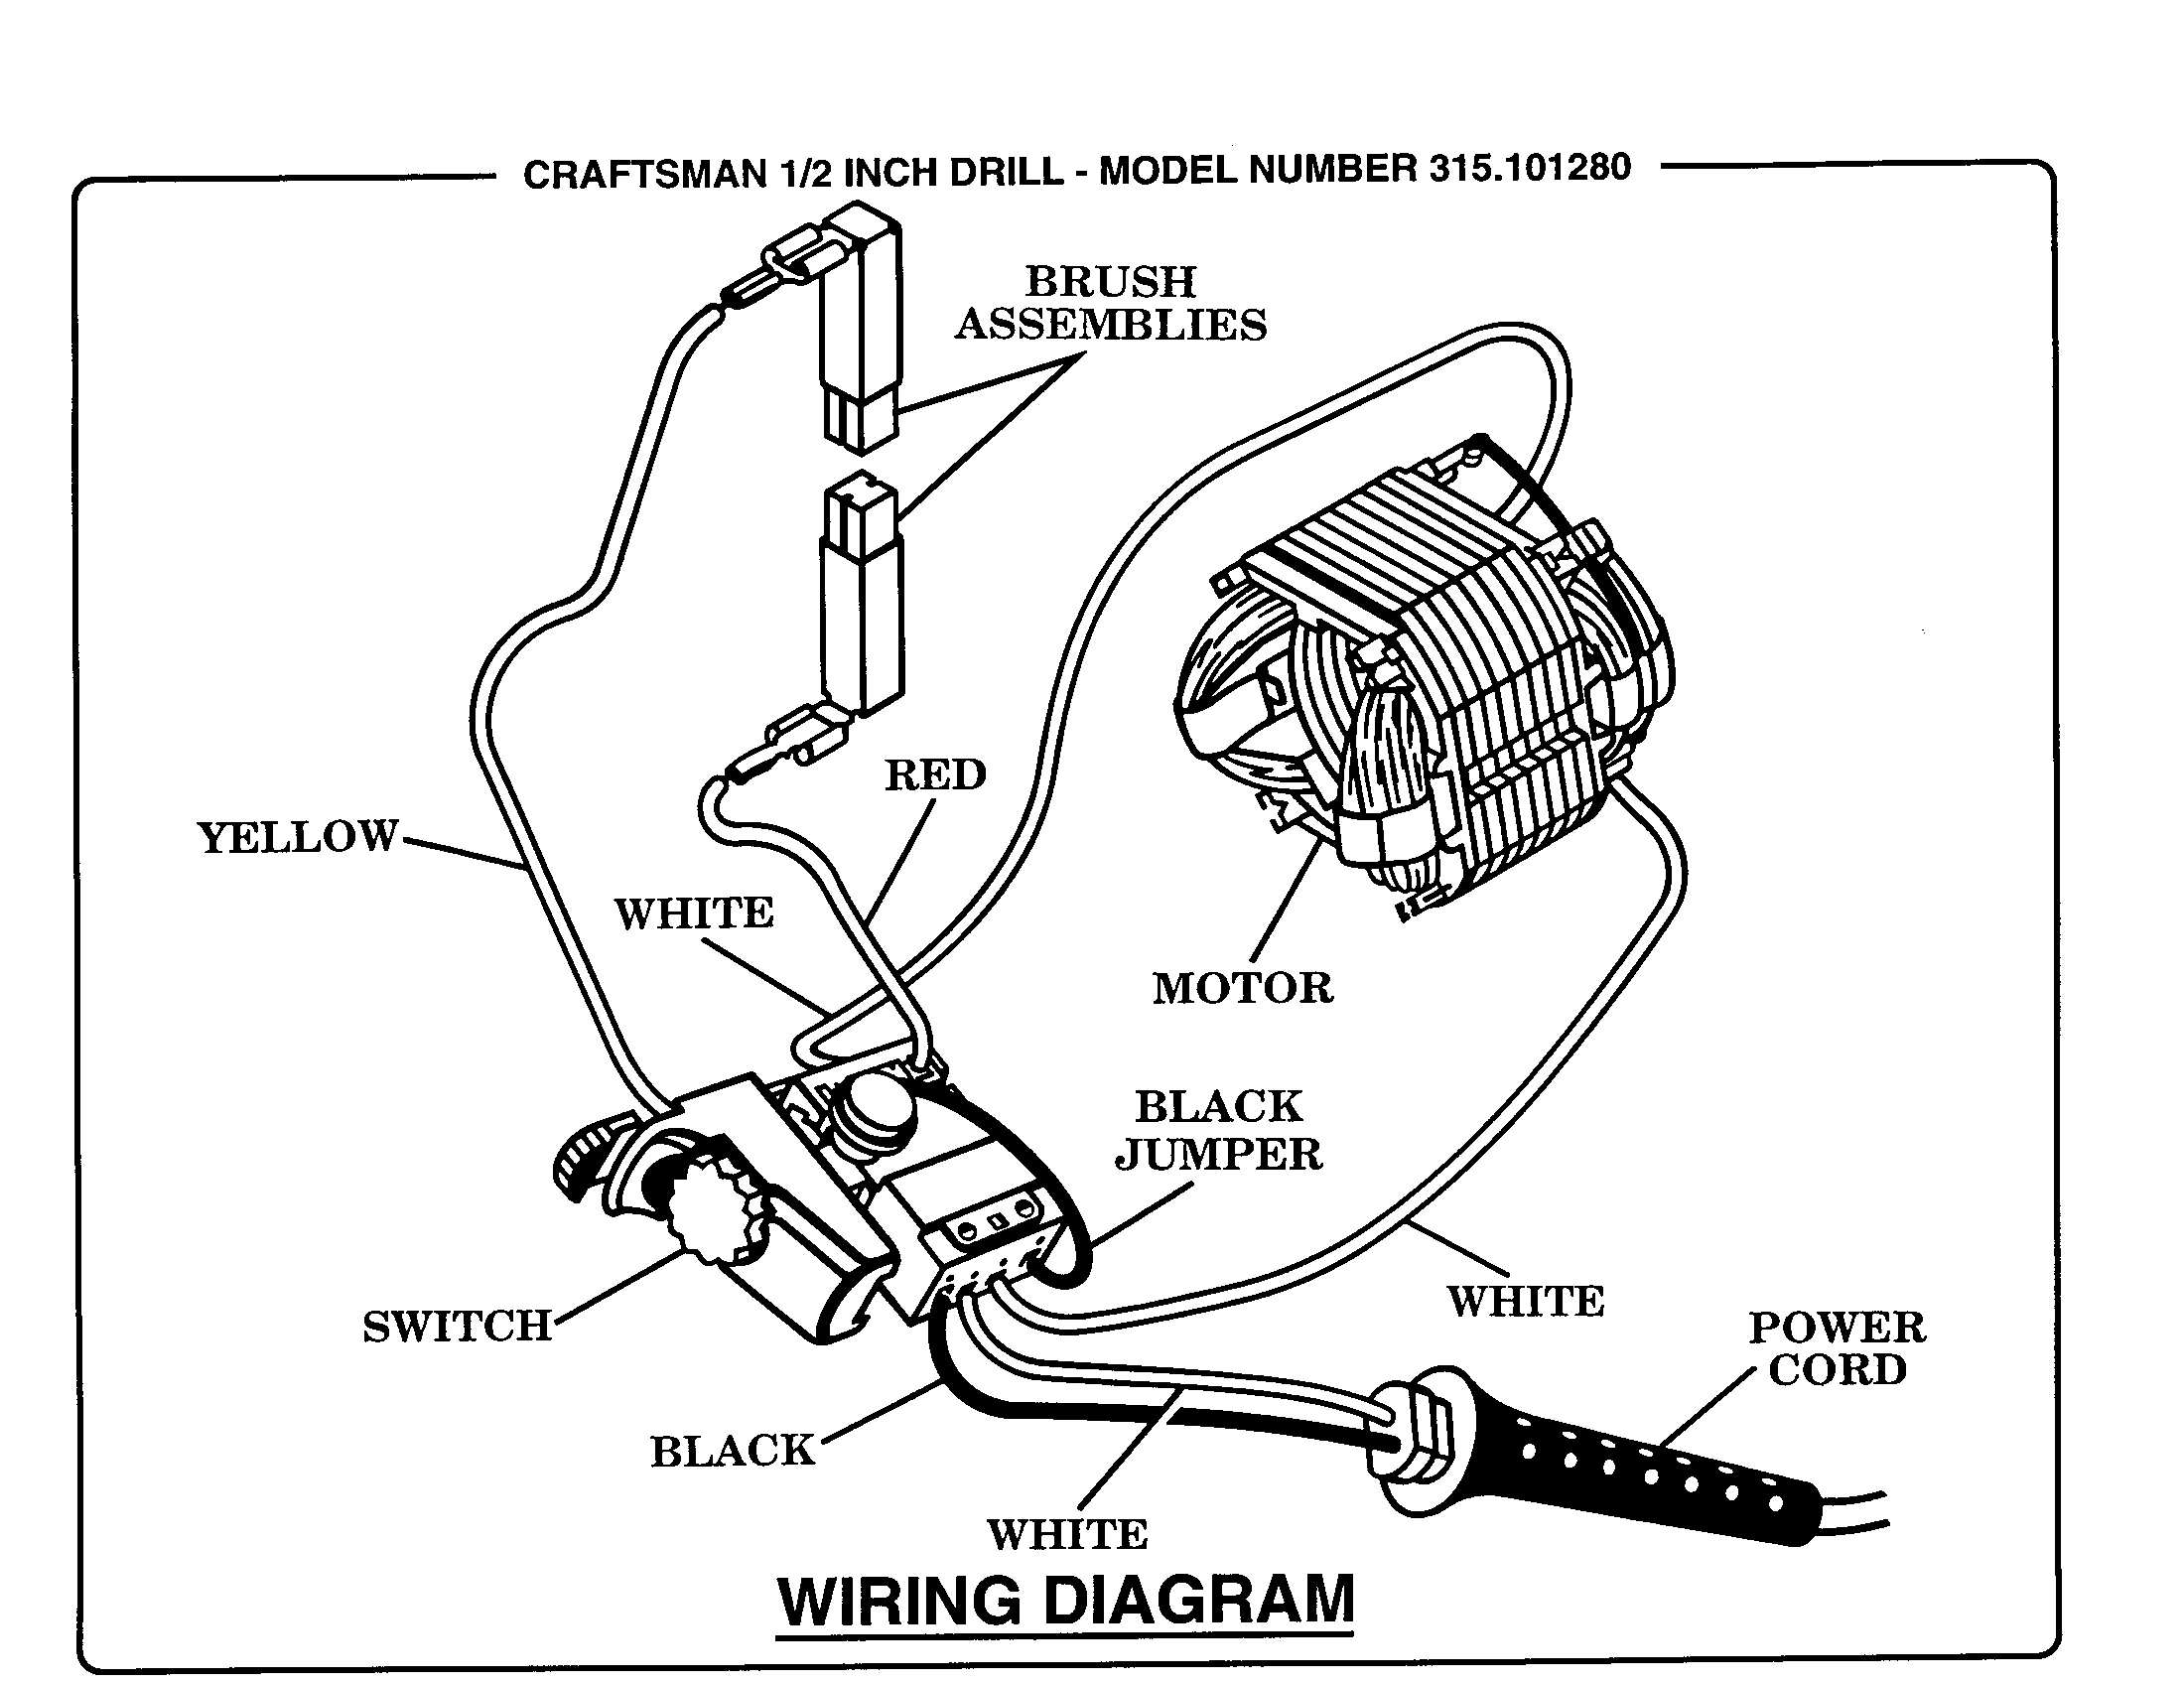 WIRING DIAGRAM Diagram & Parts List for Model 315101280